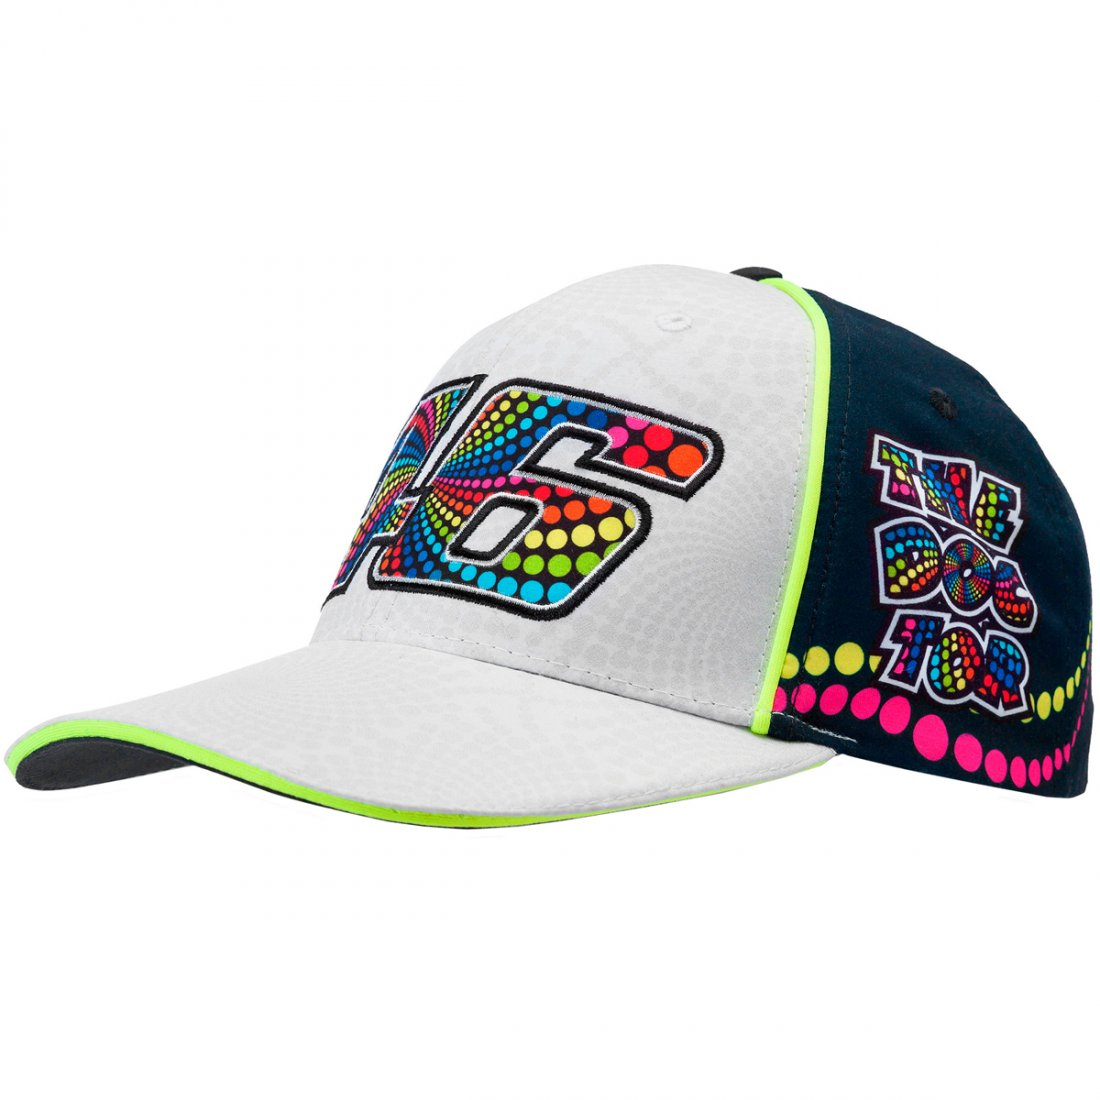 Gorra VR46 Rossi VR 46 269403 Lady · Motocard 59c745d856a